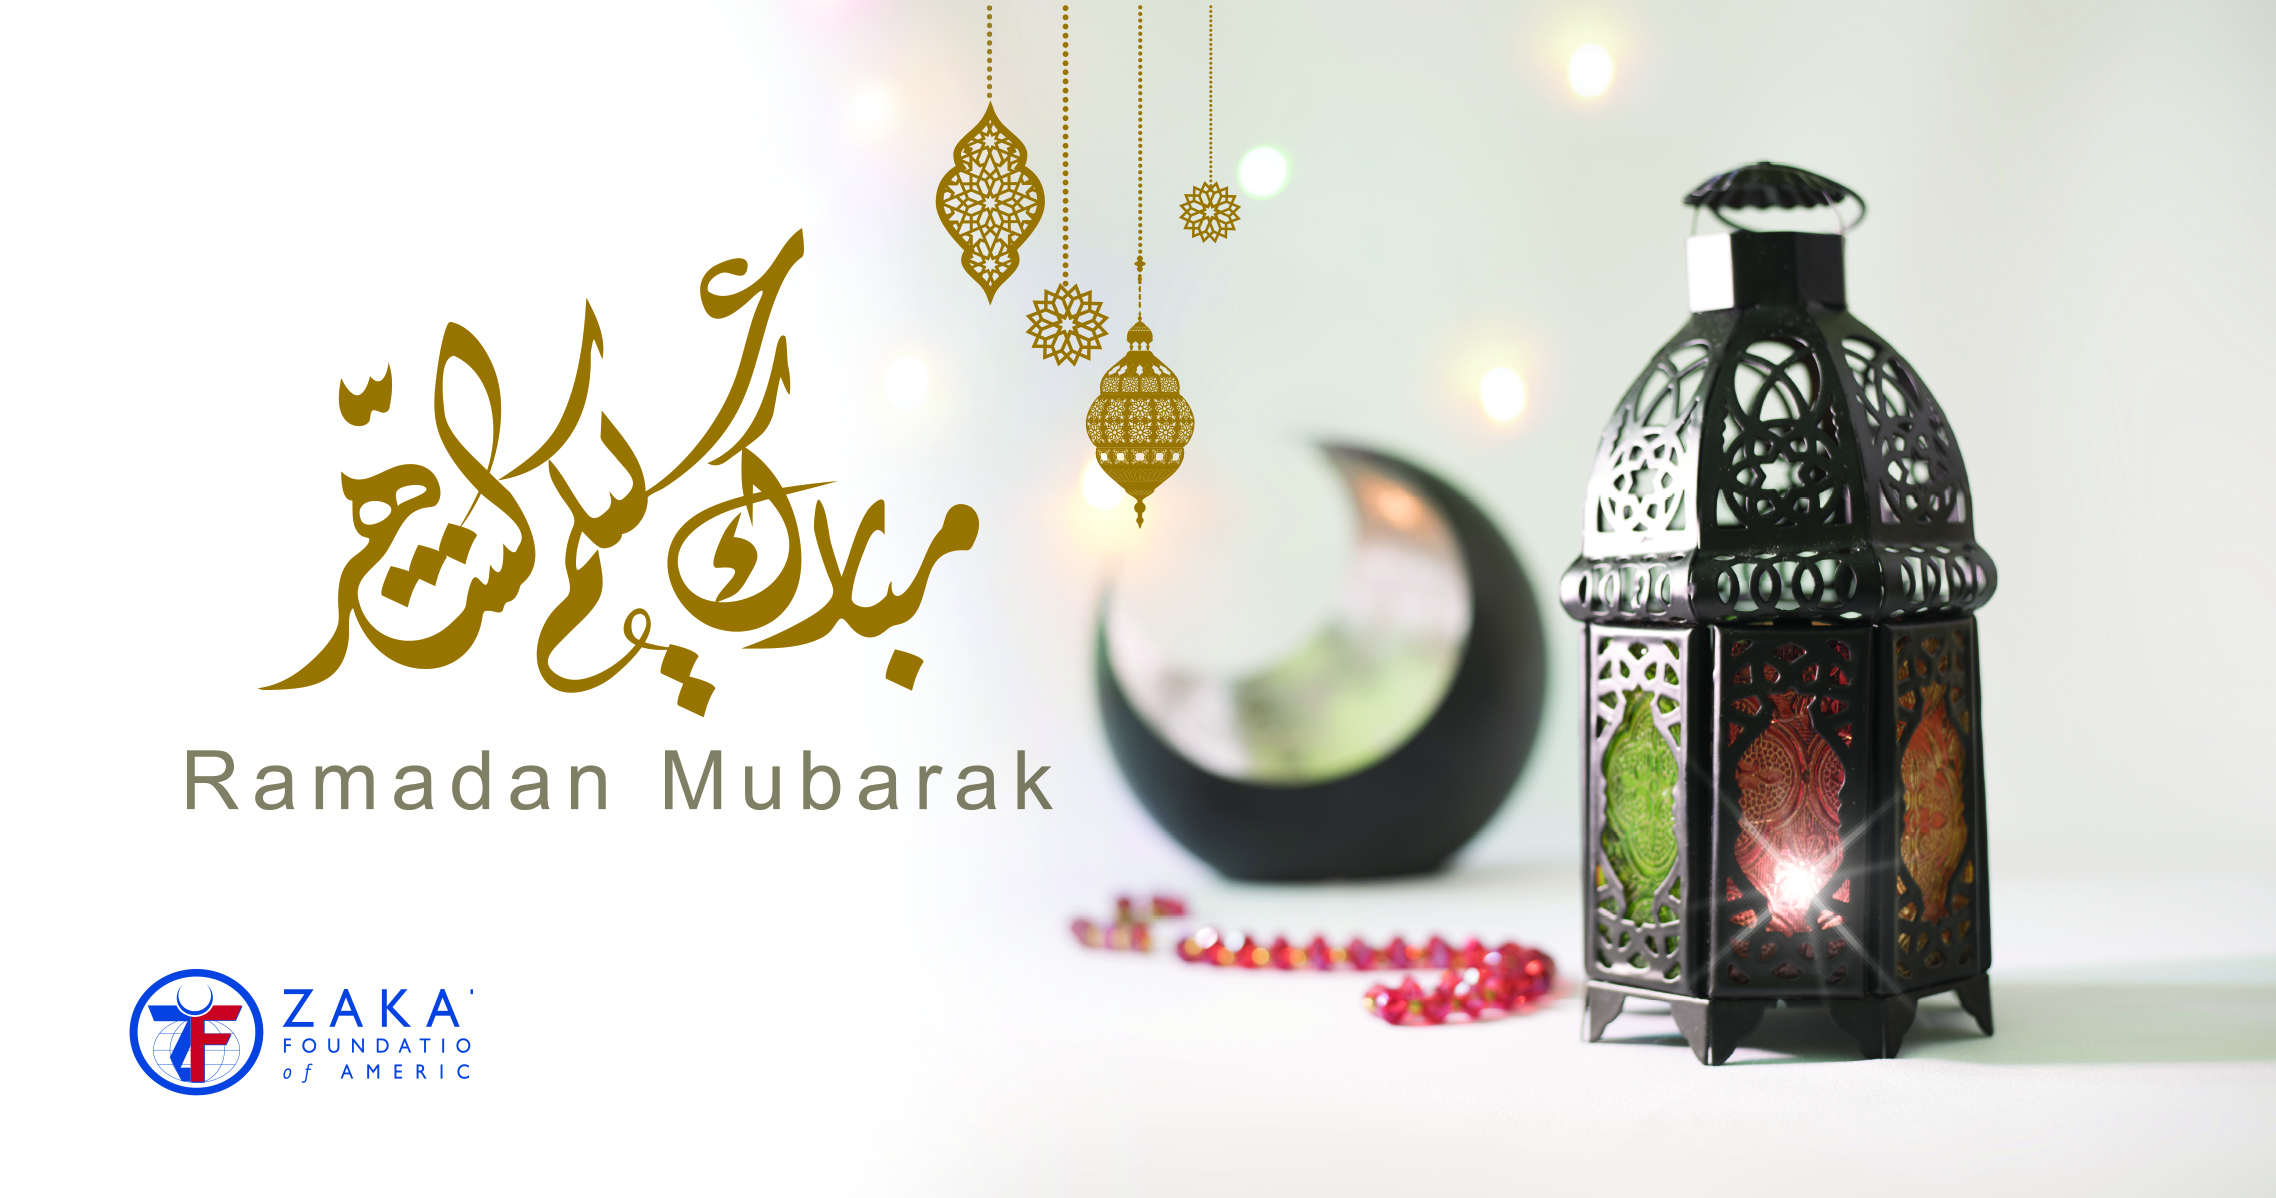 Making Up for Missed Ramadan Fasts - Zakat Foundation of America